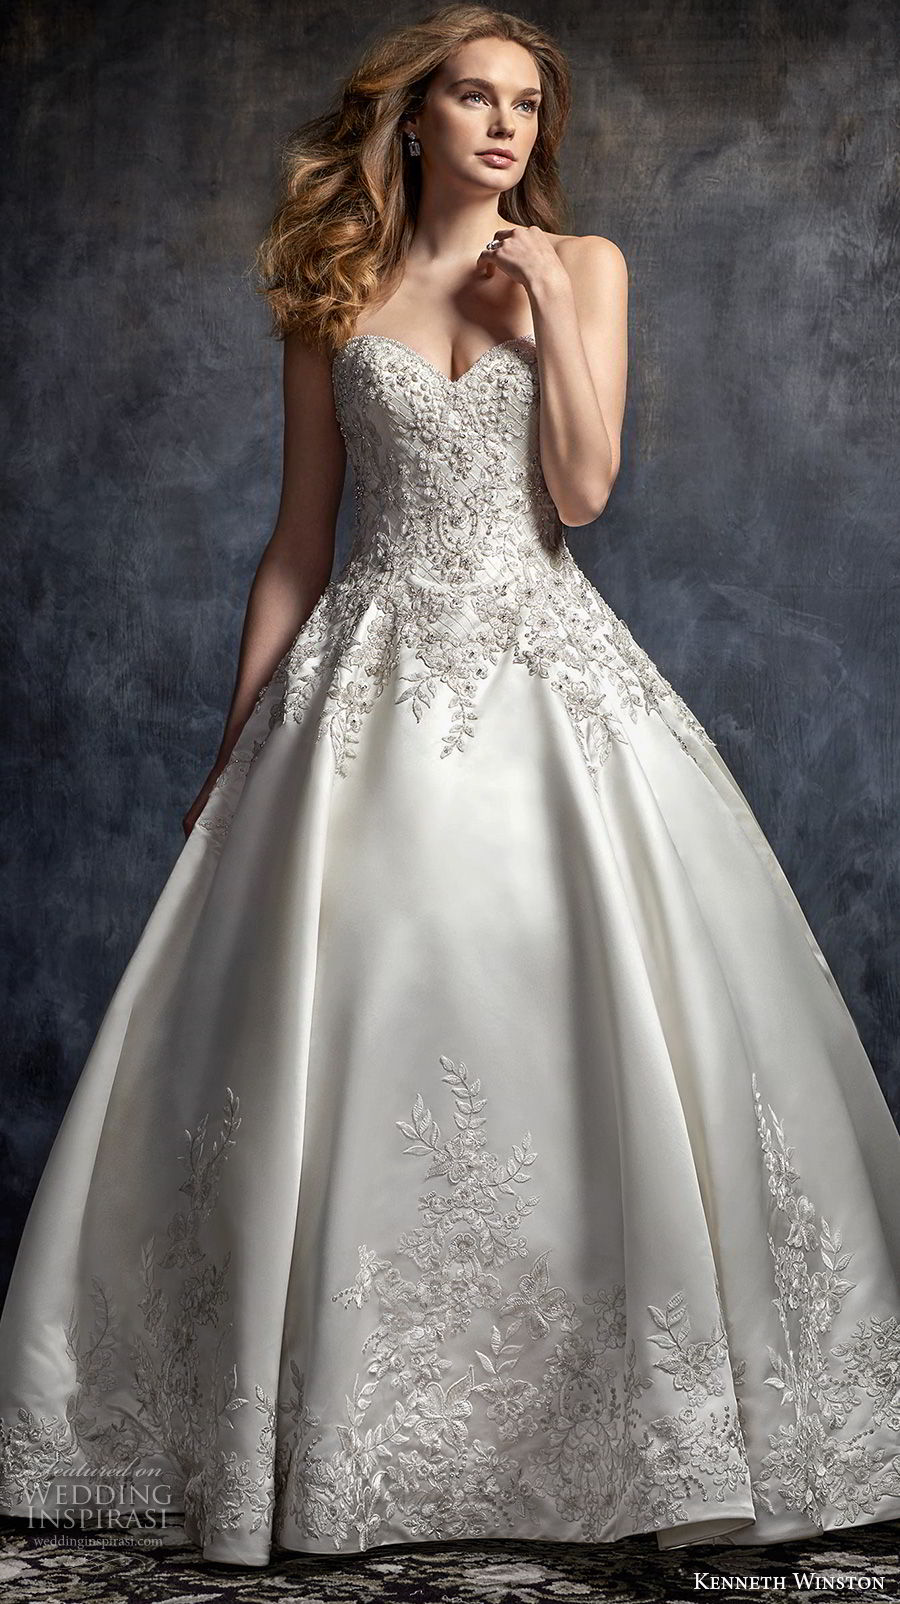 kenneth winston fall 2017 bridal strapless sweetheart neckline heavily embellished beaded bodice satin skirt princess ball gown wedding dress chapel train (49) mv